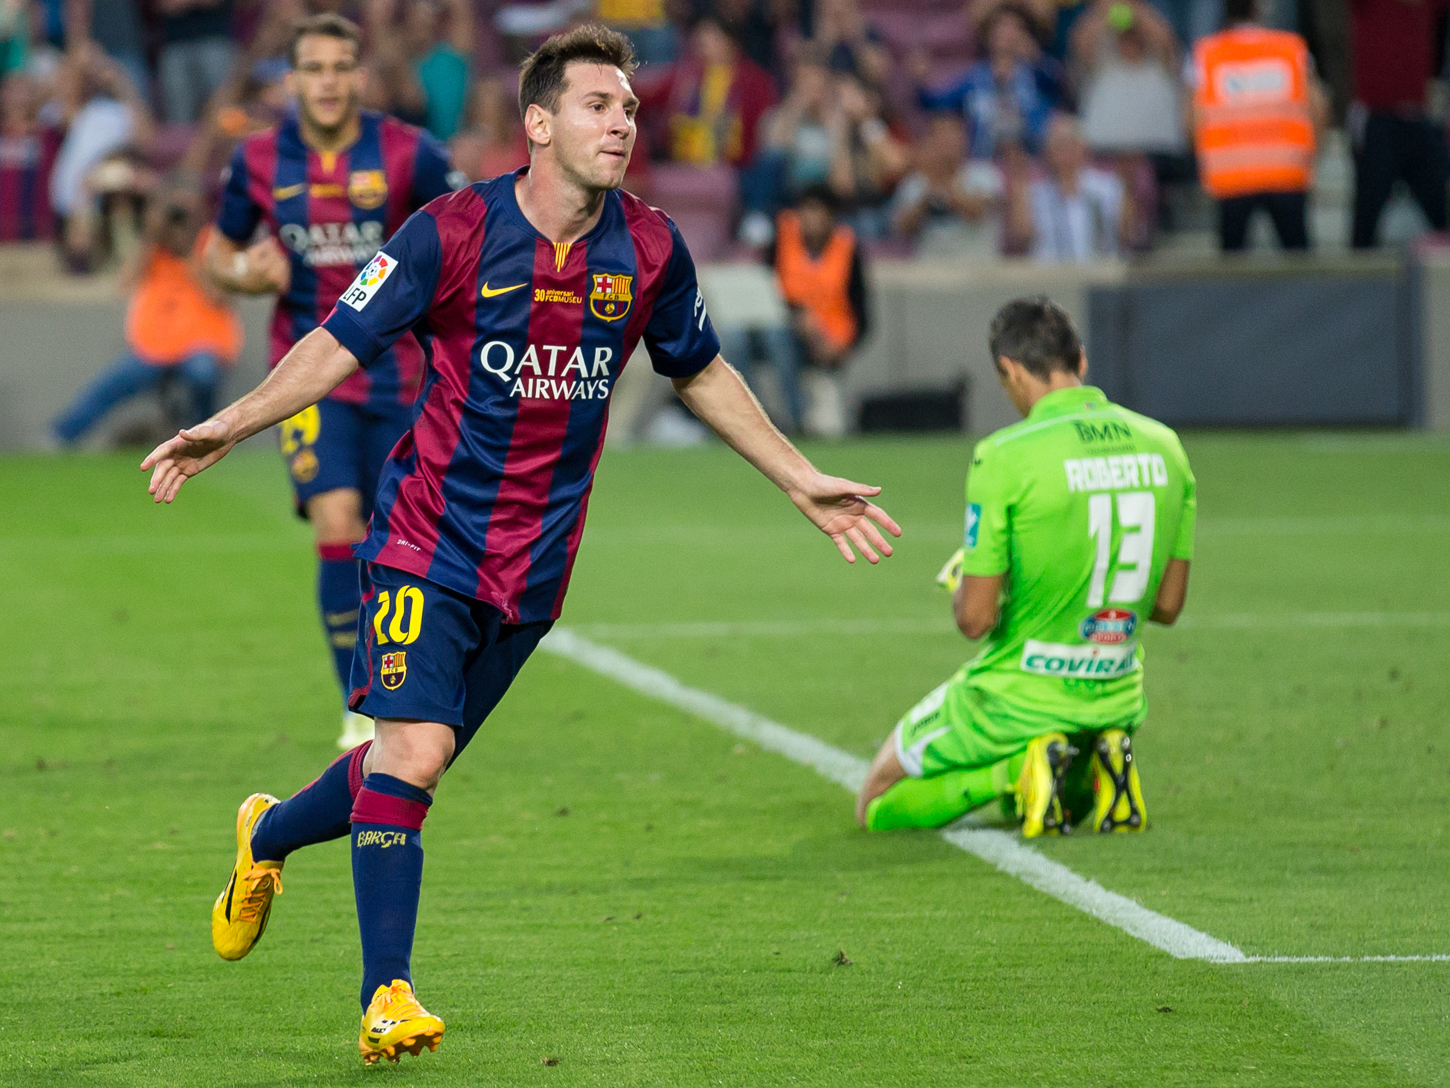 File:Leo Messi v Granada 2014 jpg - Wikimedia Commons